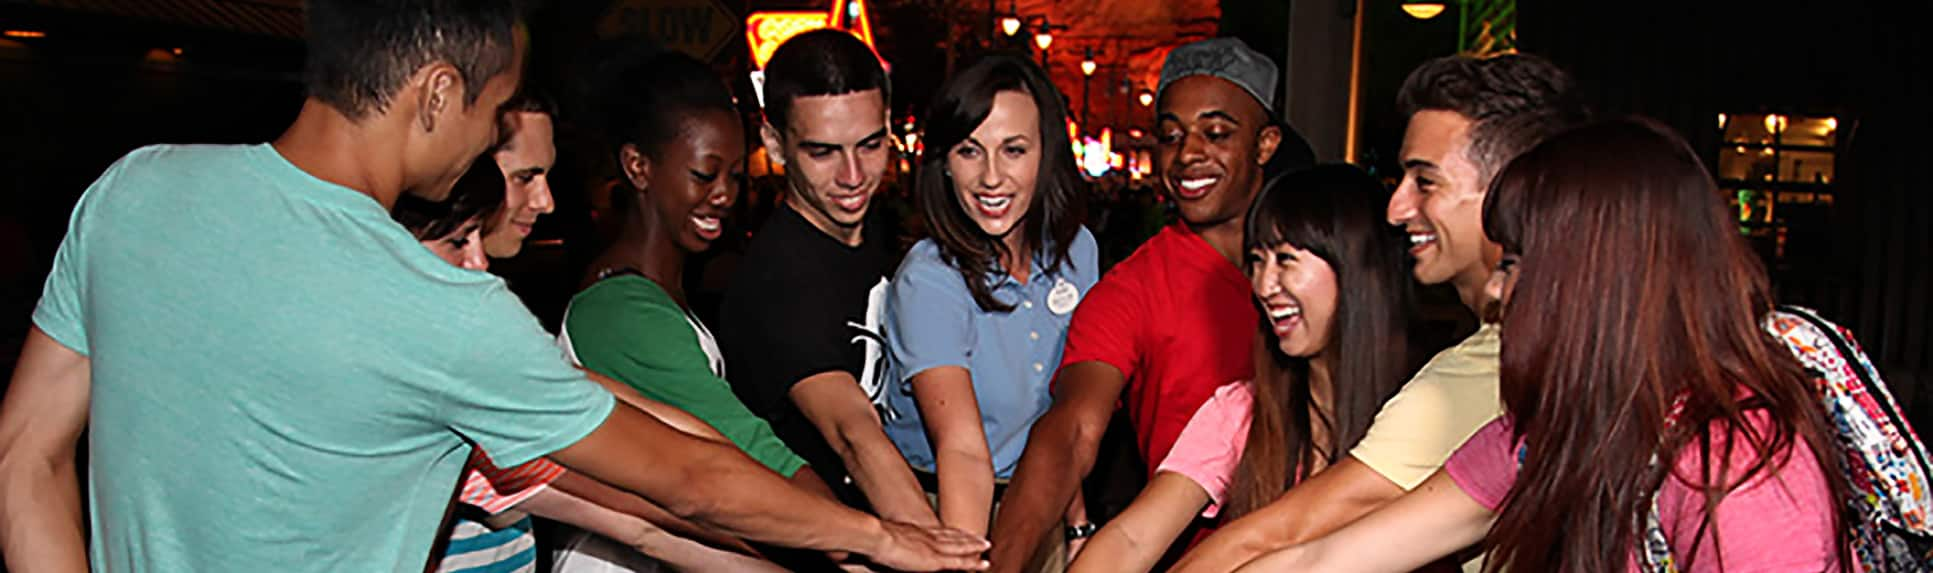 A Cast Member and young adults putting their hands together in a group huddle